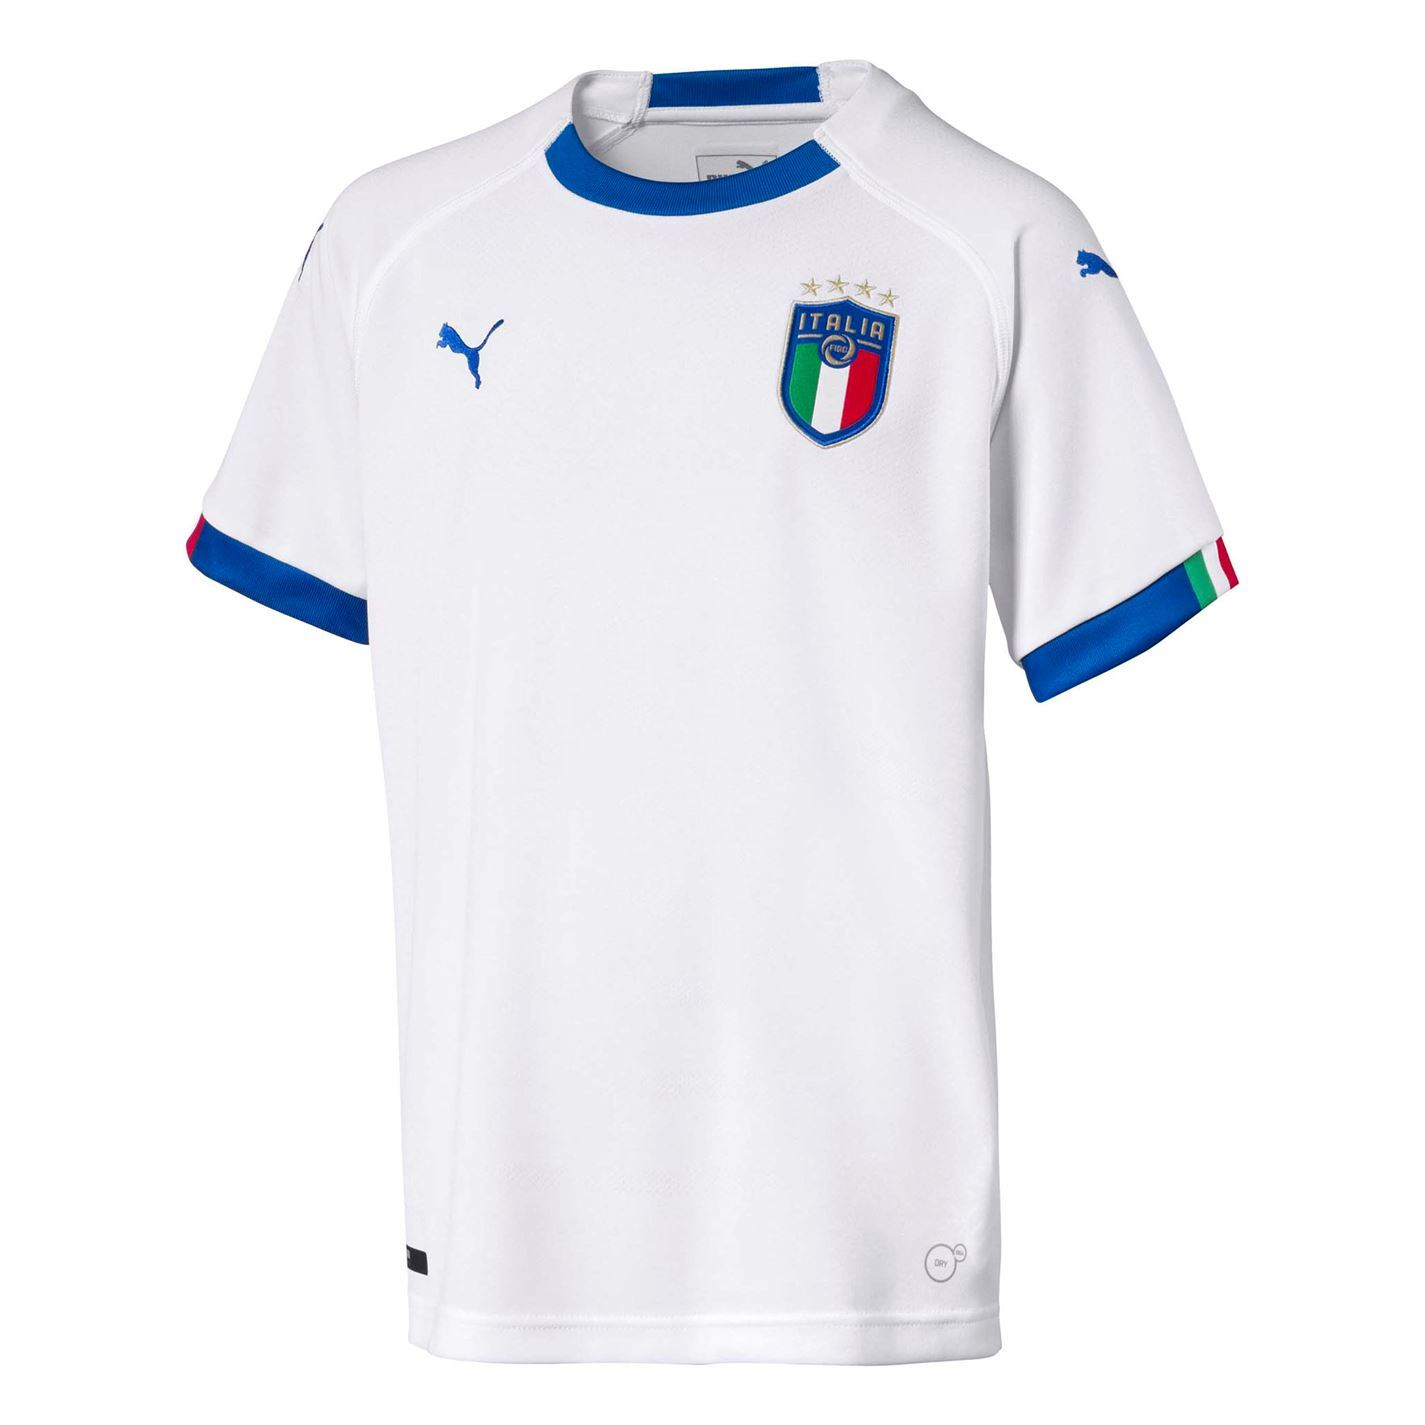 18f2a35275aa Puma Italy Away Jersey 2018 Italia Juniors White Blue Football Soccer Shirt  Top